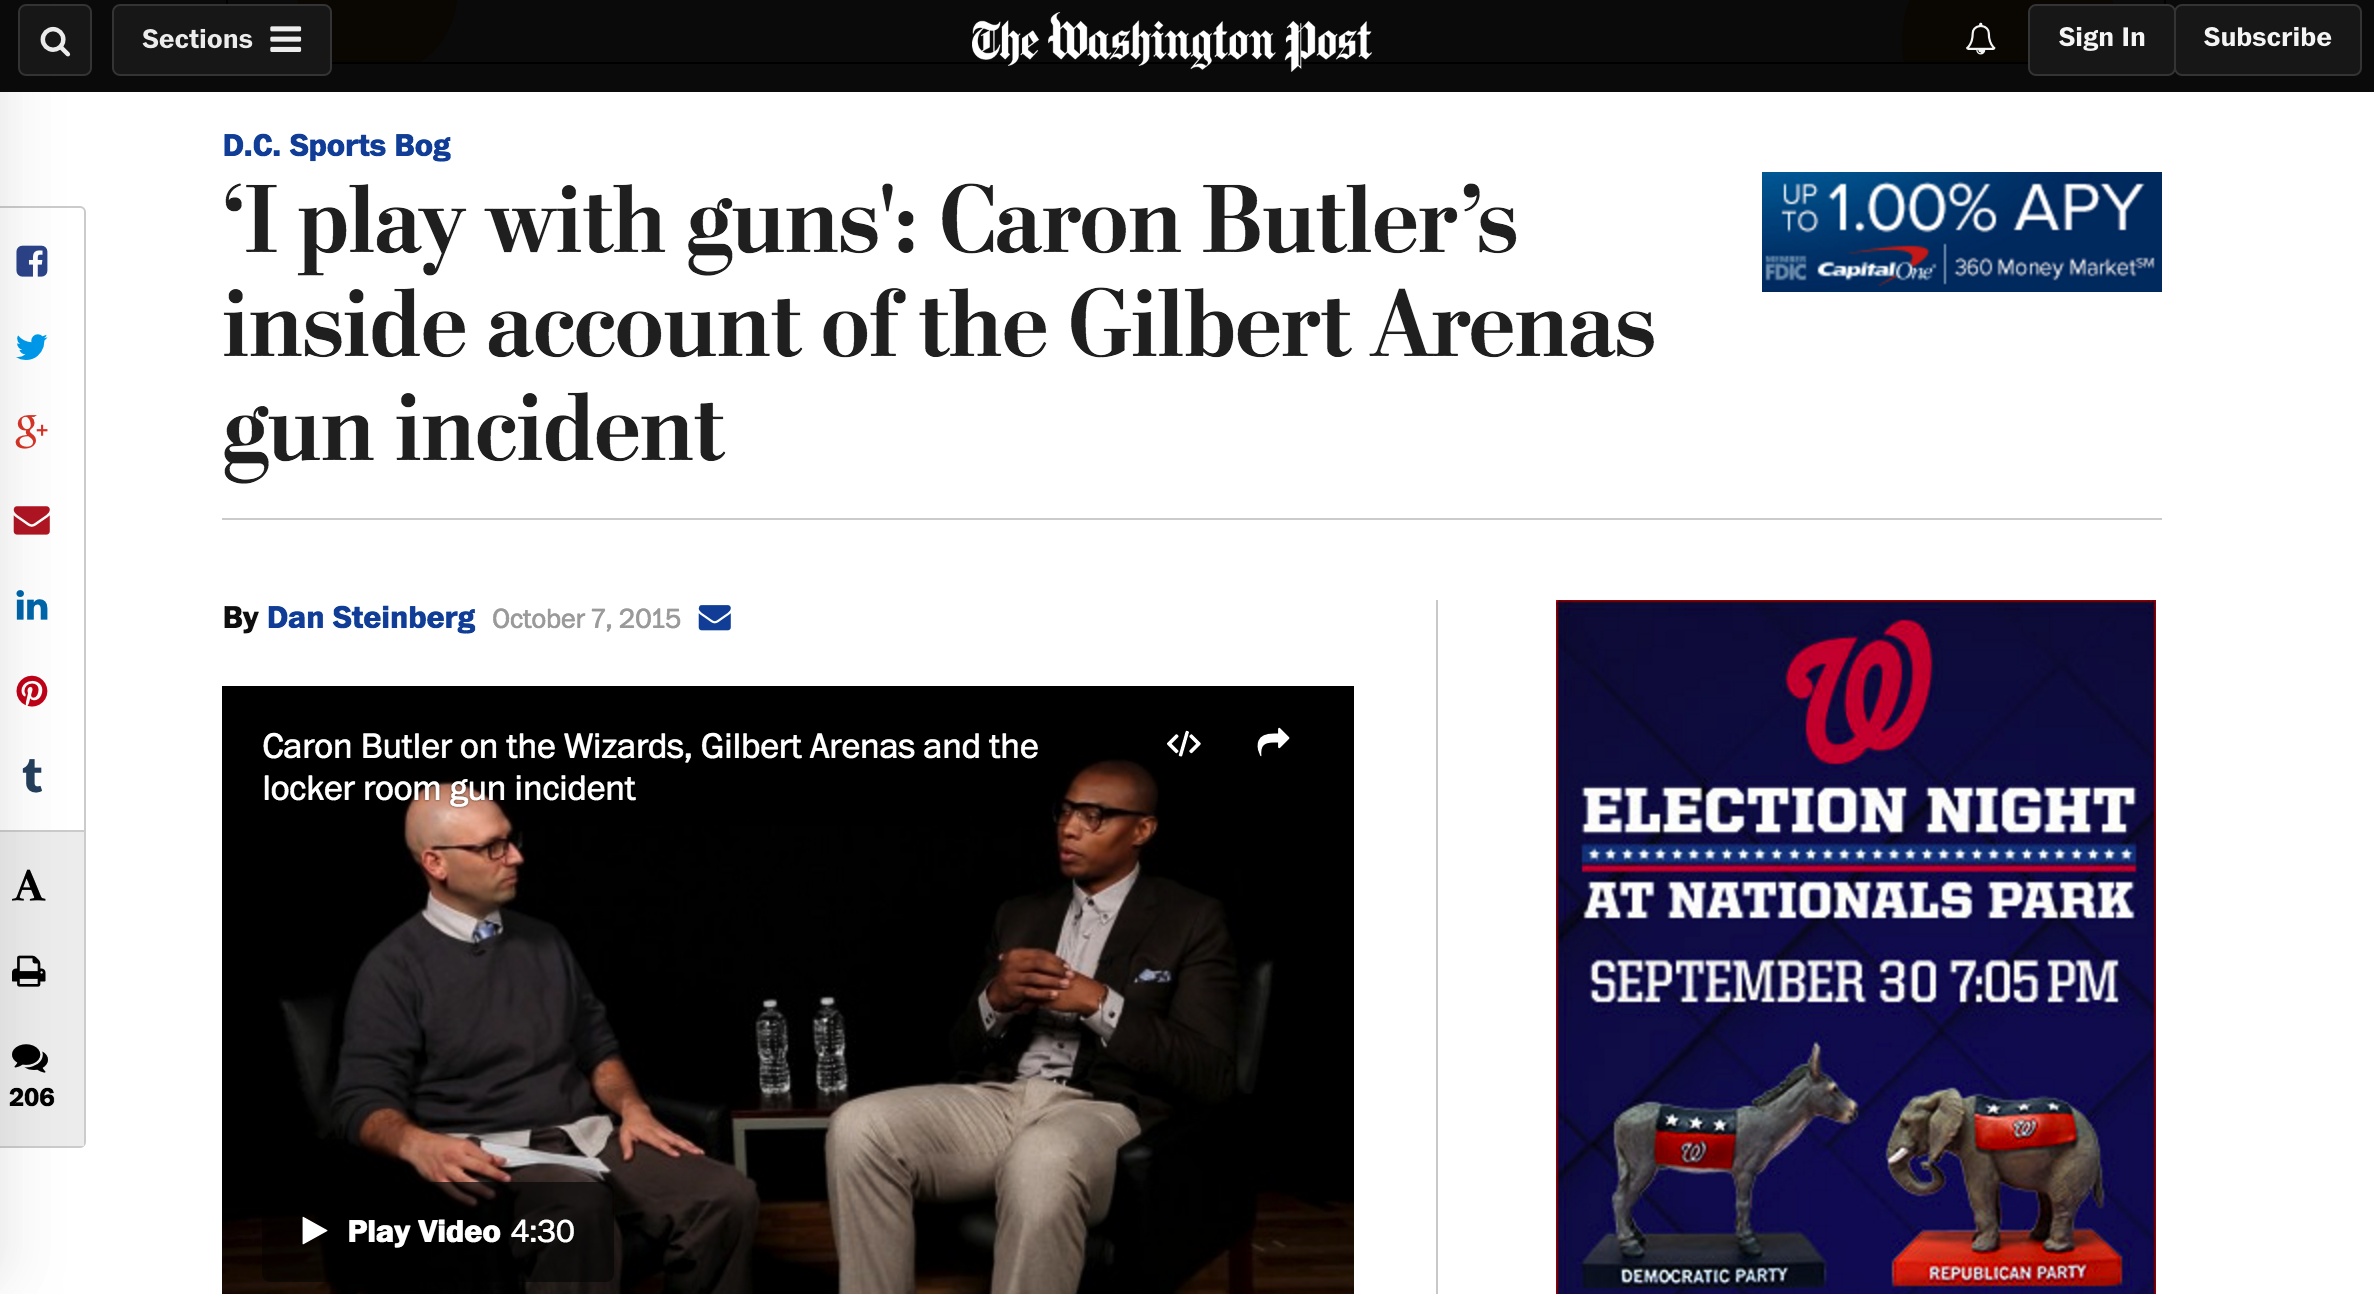 Caron Butler visted washington post headquarters for a roundtable with writers and an on-camera interview prior to the release of his memoir in october 2015.